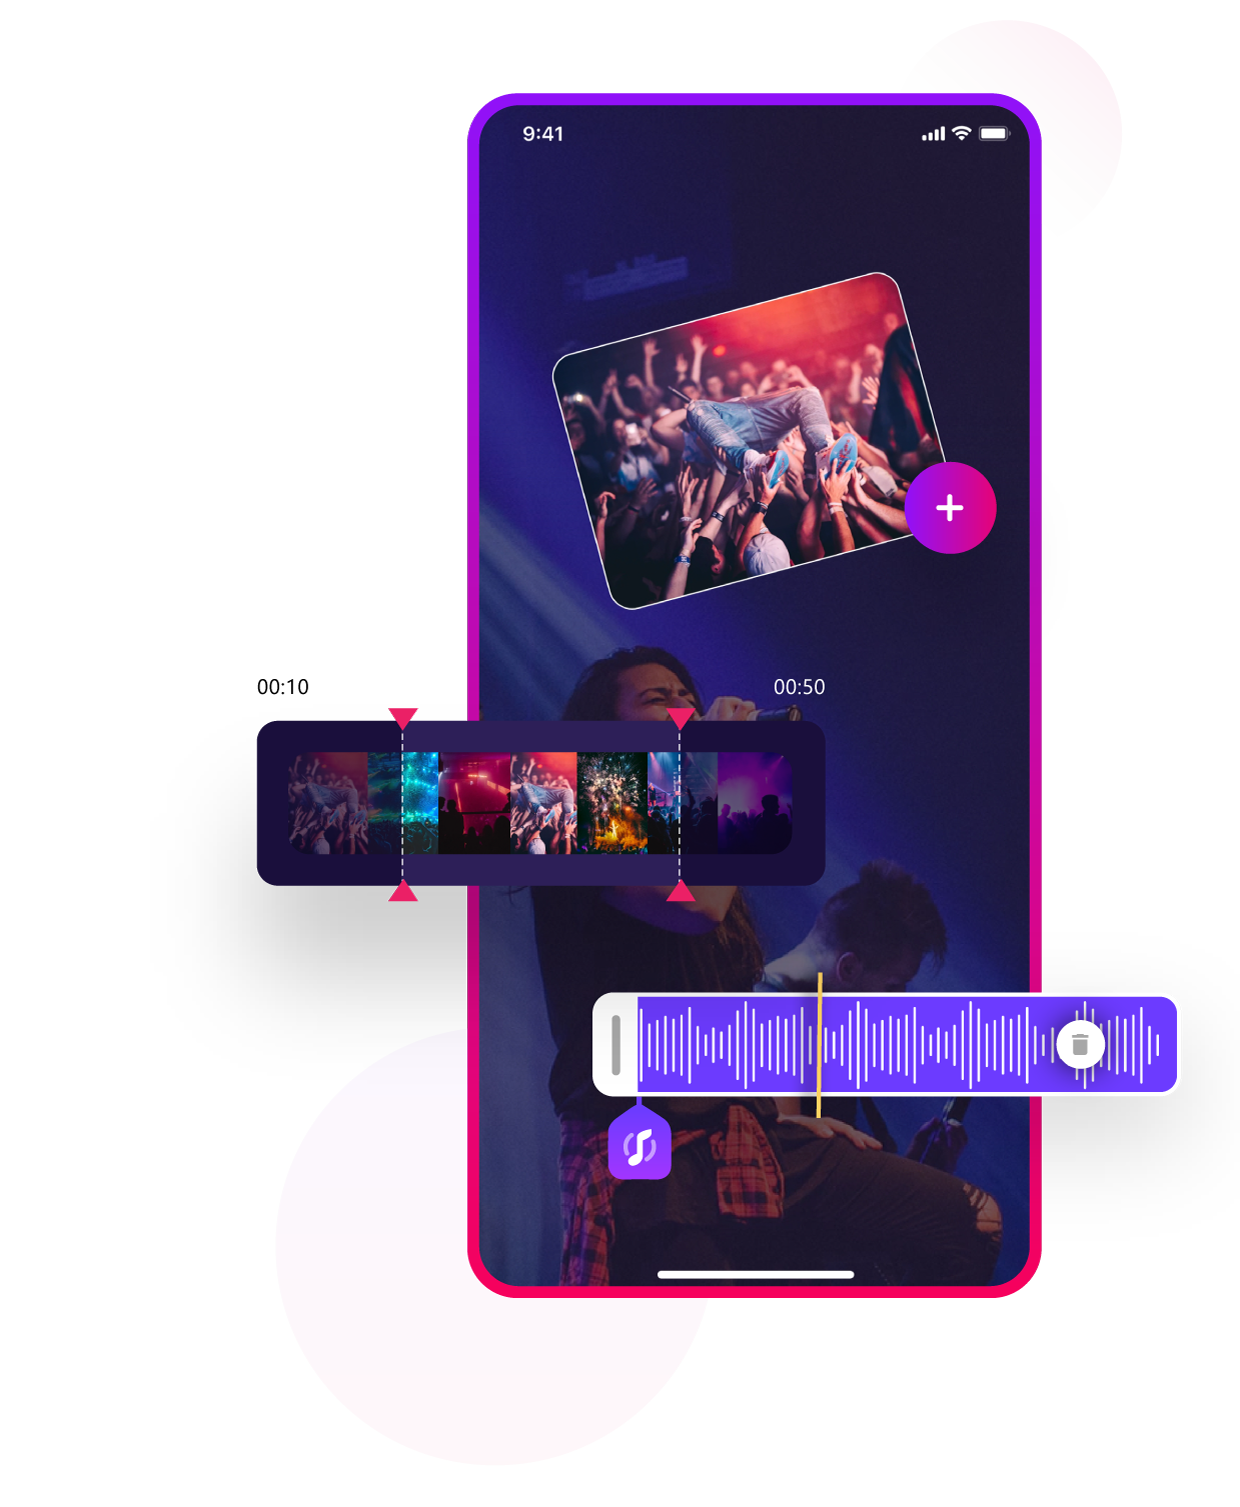 Audio and Video Mixing with Video Editor for iPhone & iPad